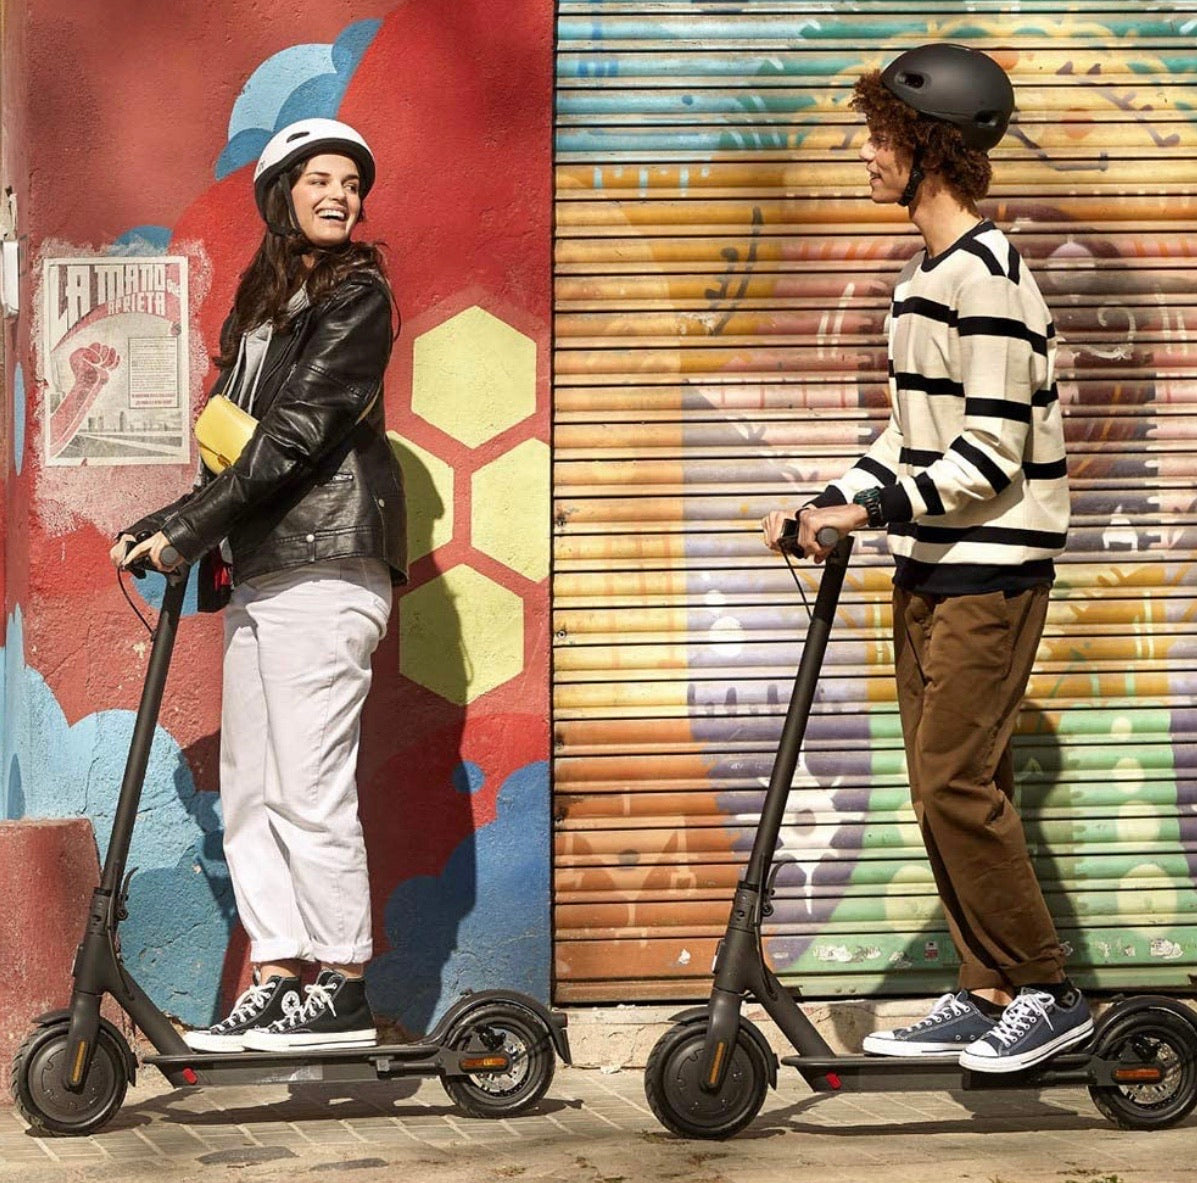 Xiaomi S1 Electric Scooter Urban Transport